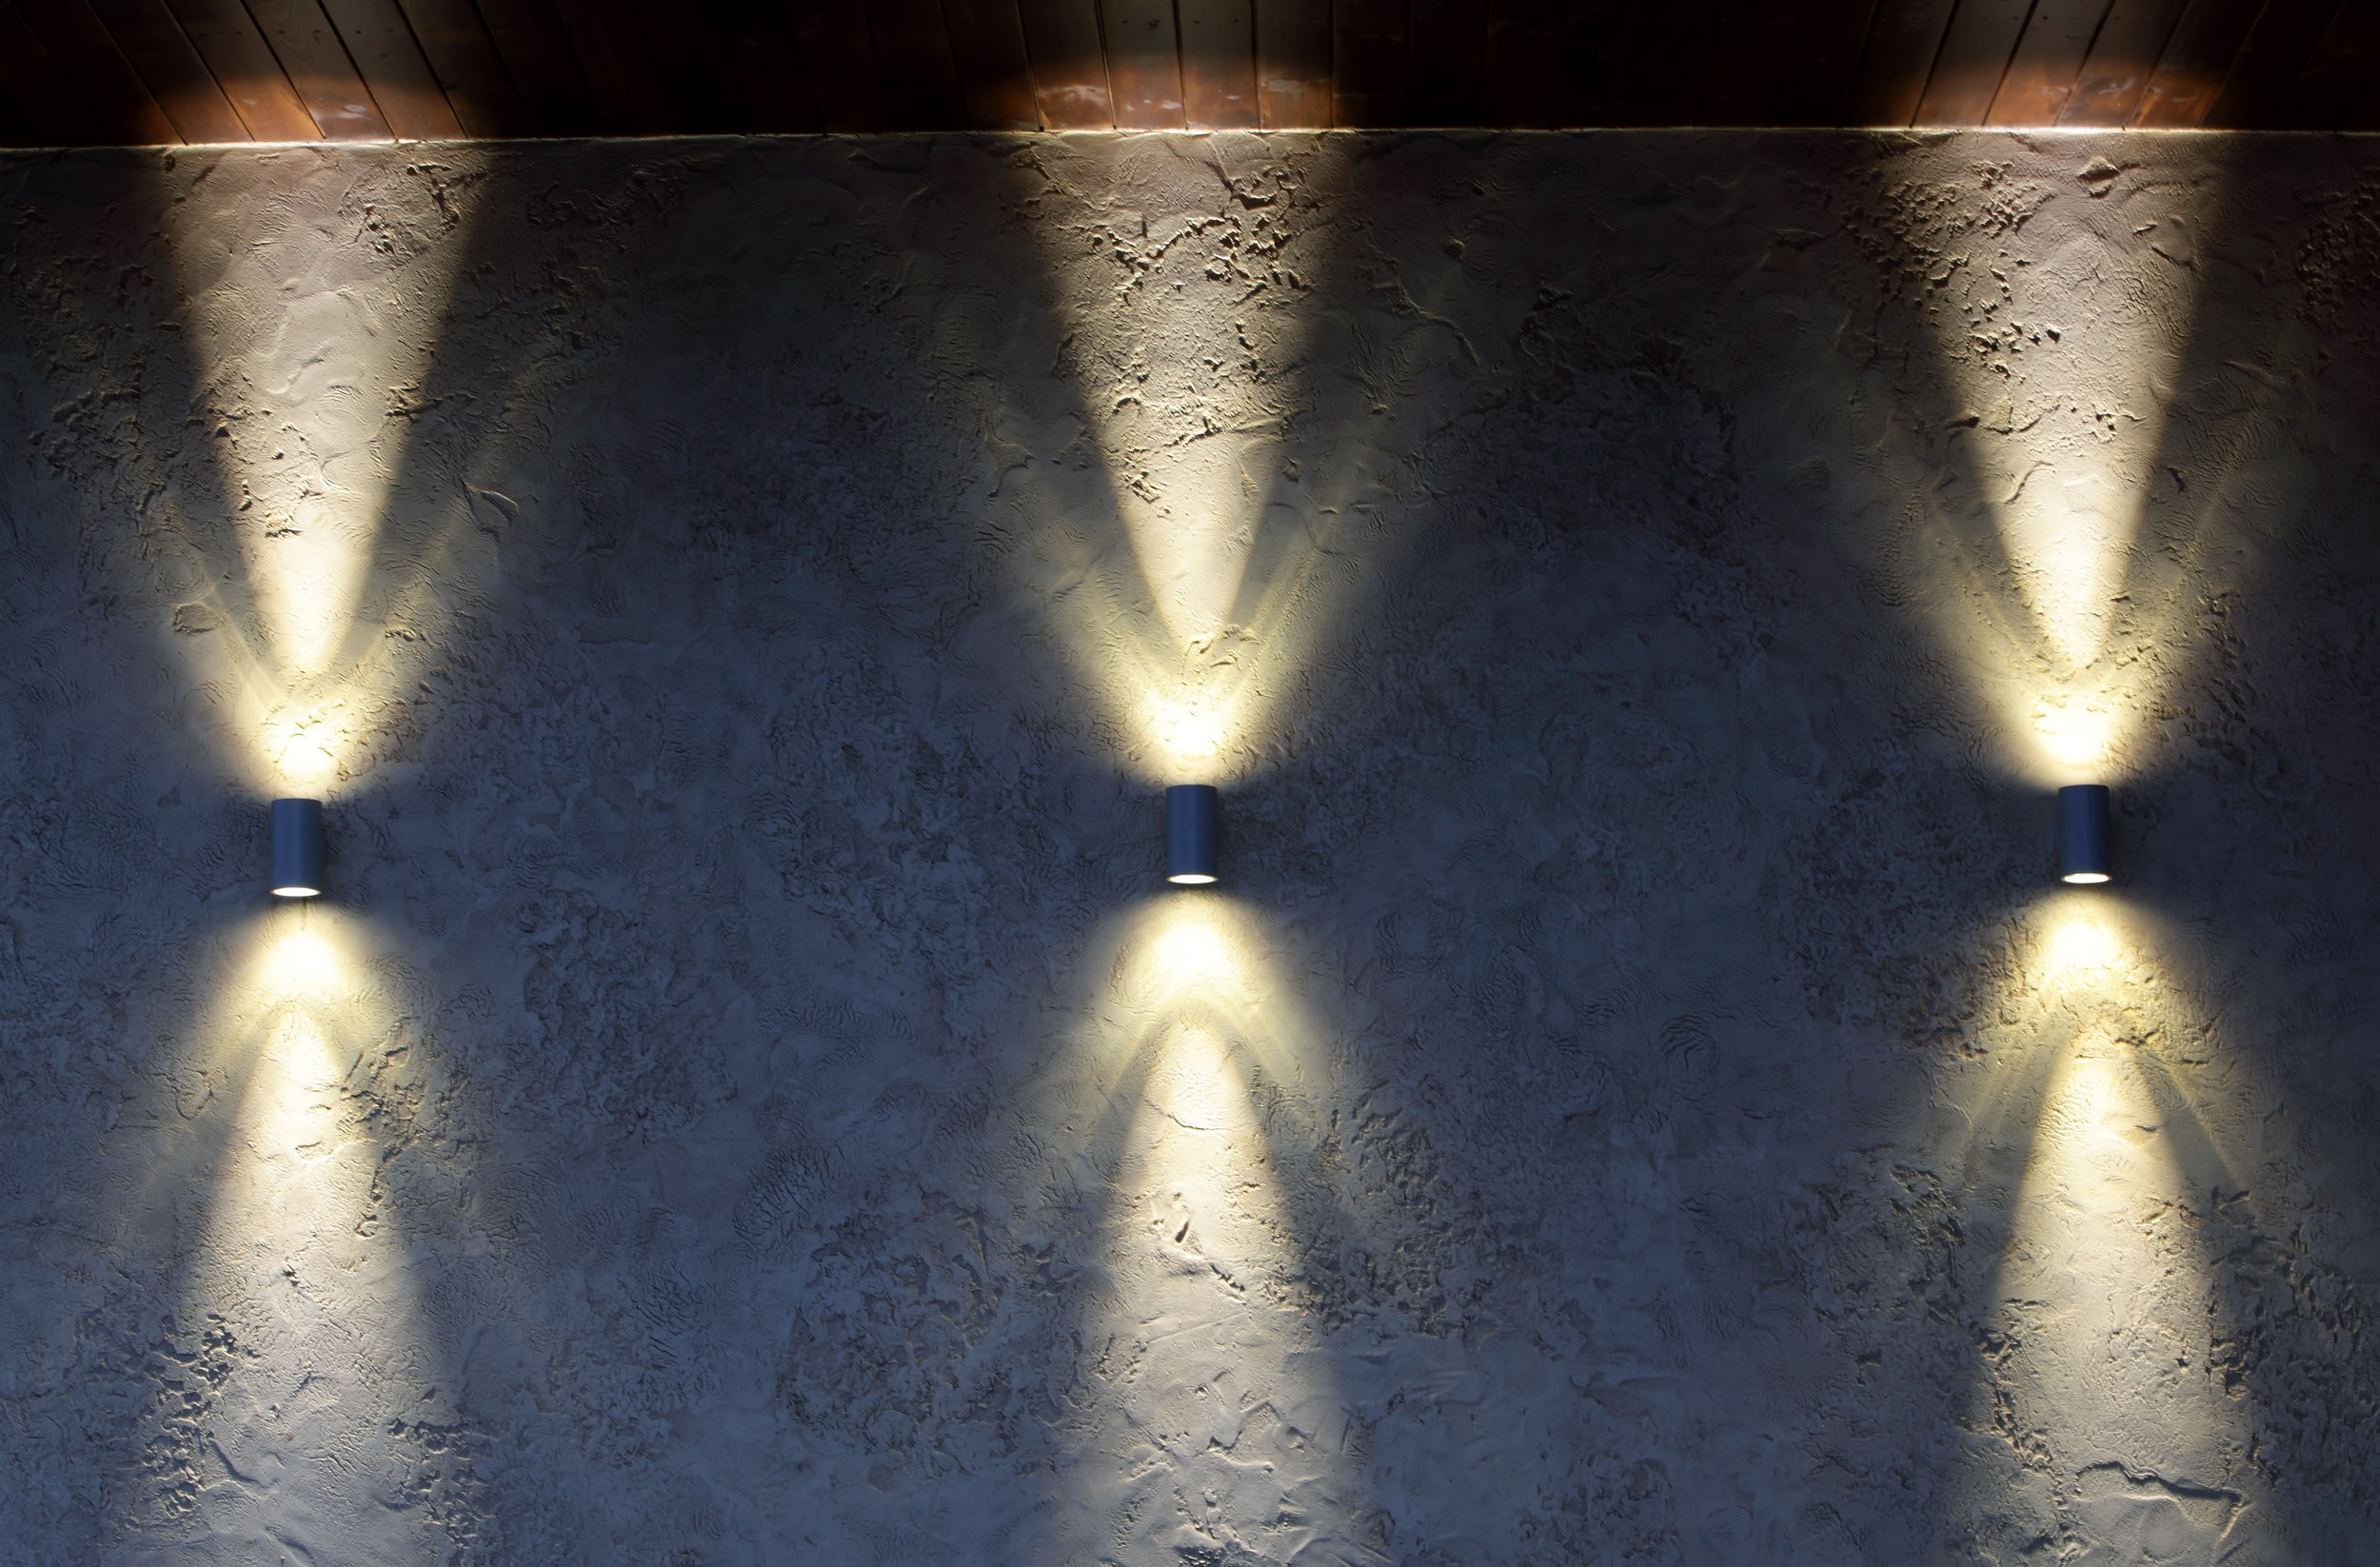 Wall Washers - Wall washers help outline the overall structure of a home and keep the house well lit to deter intruders.